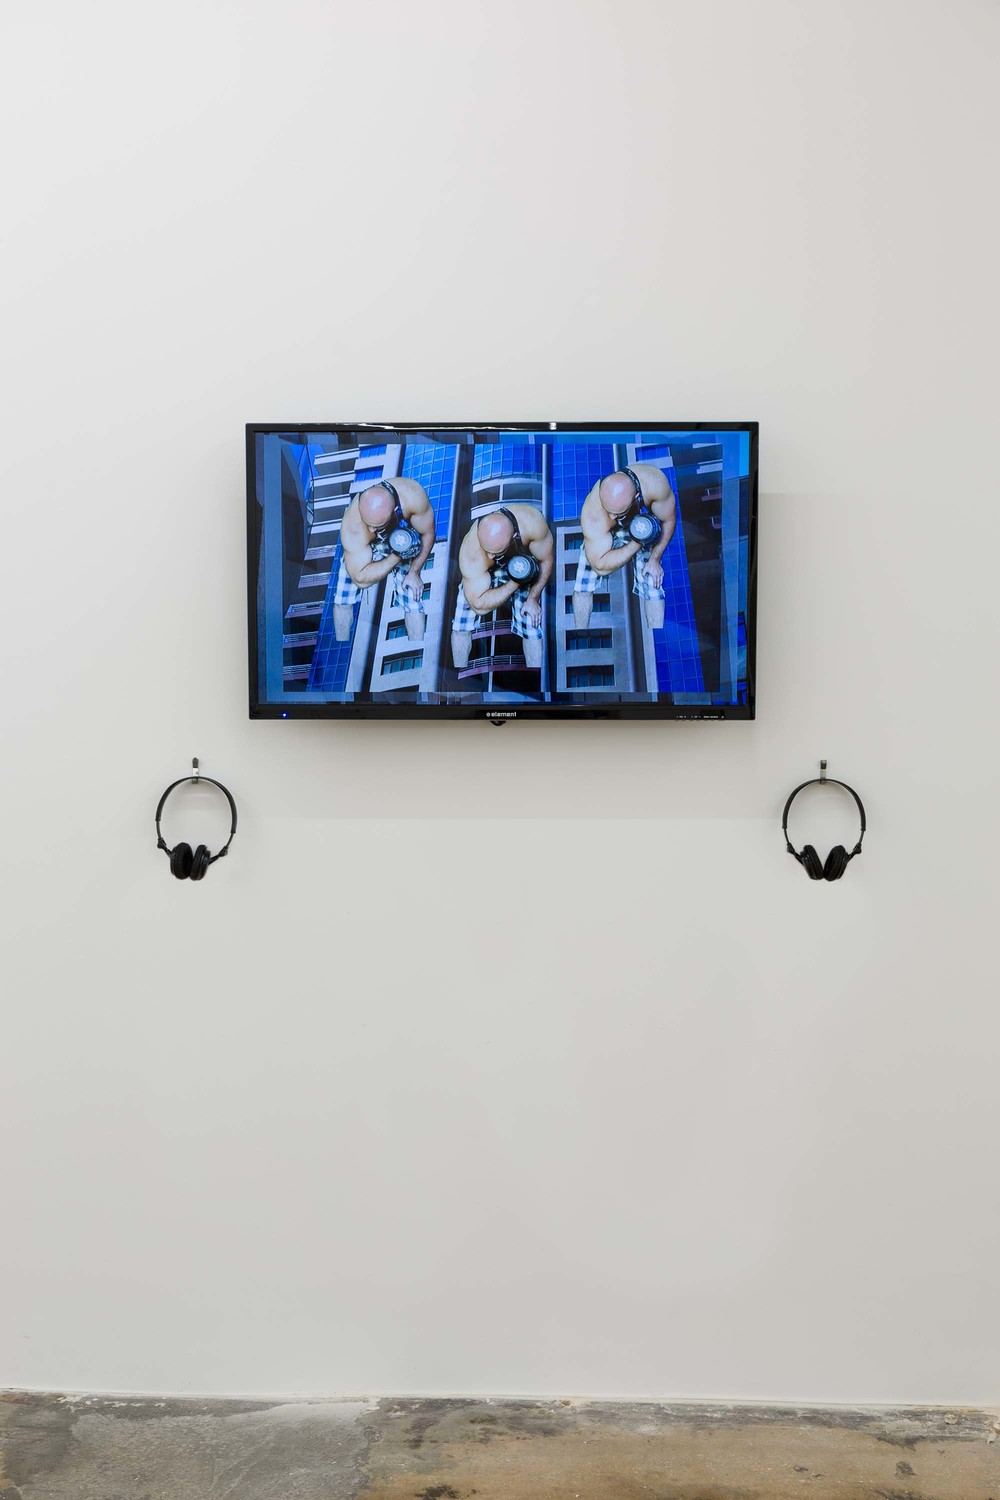 Hannah Black, Bodybuilding, 2015, installation view